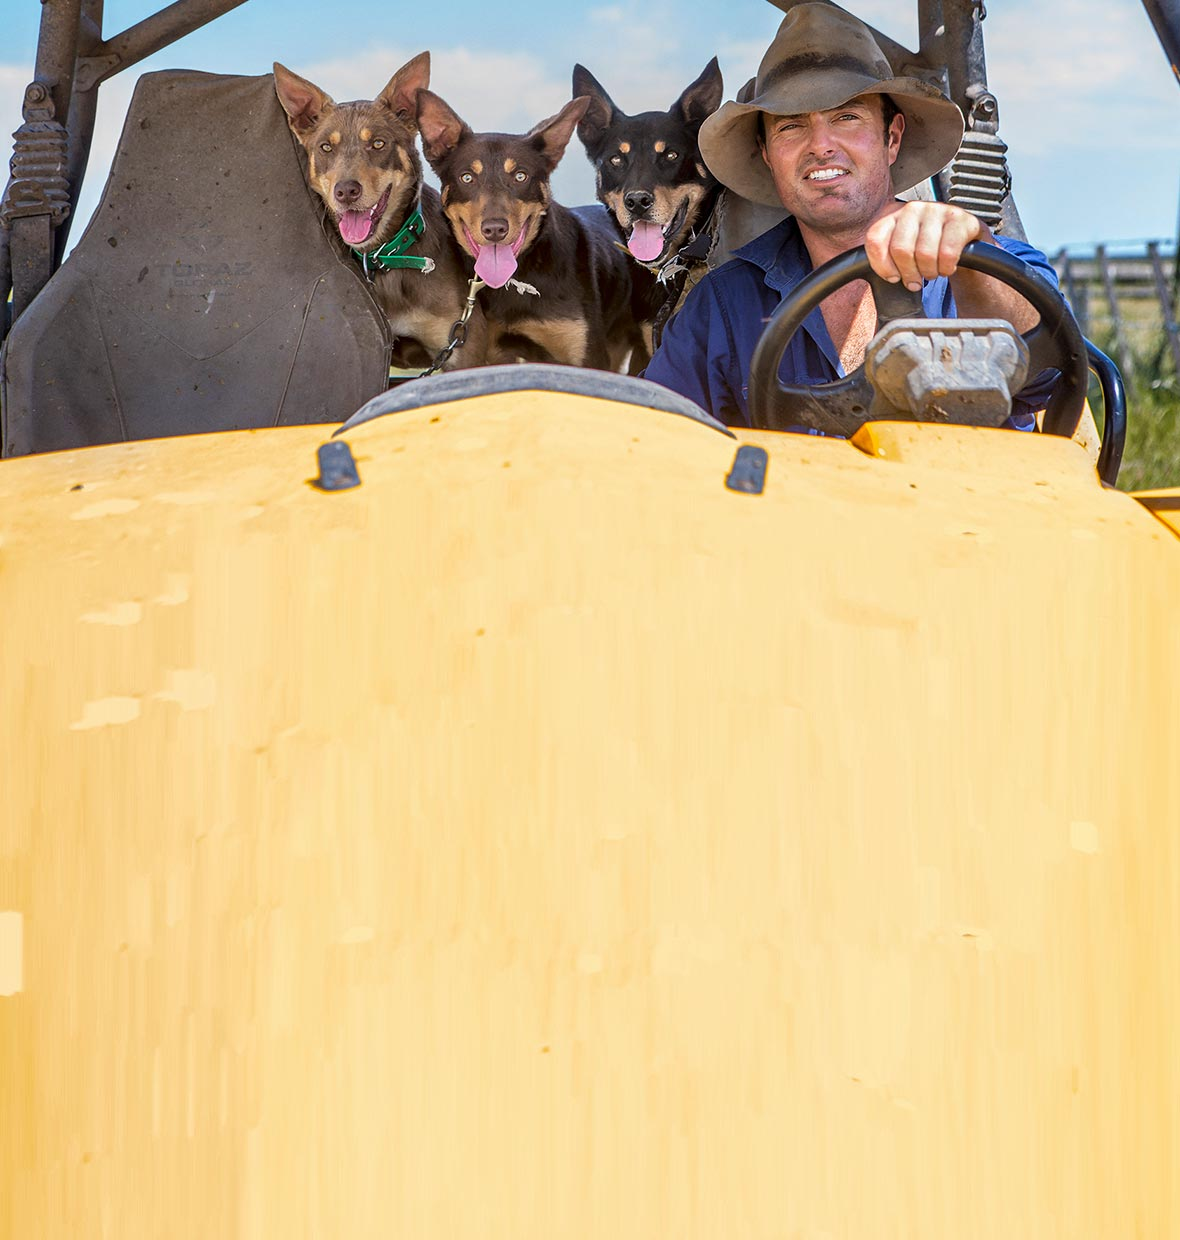 Man with working dogs driving farm vehicle